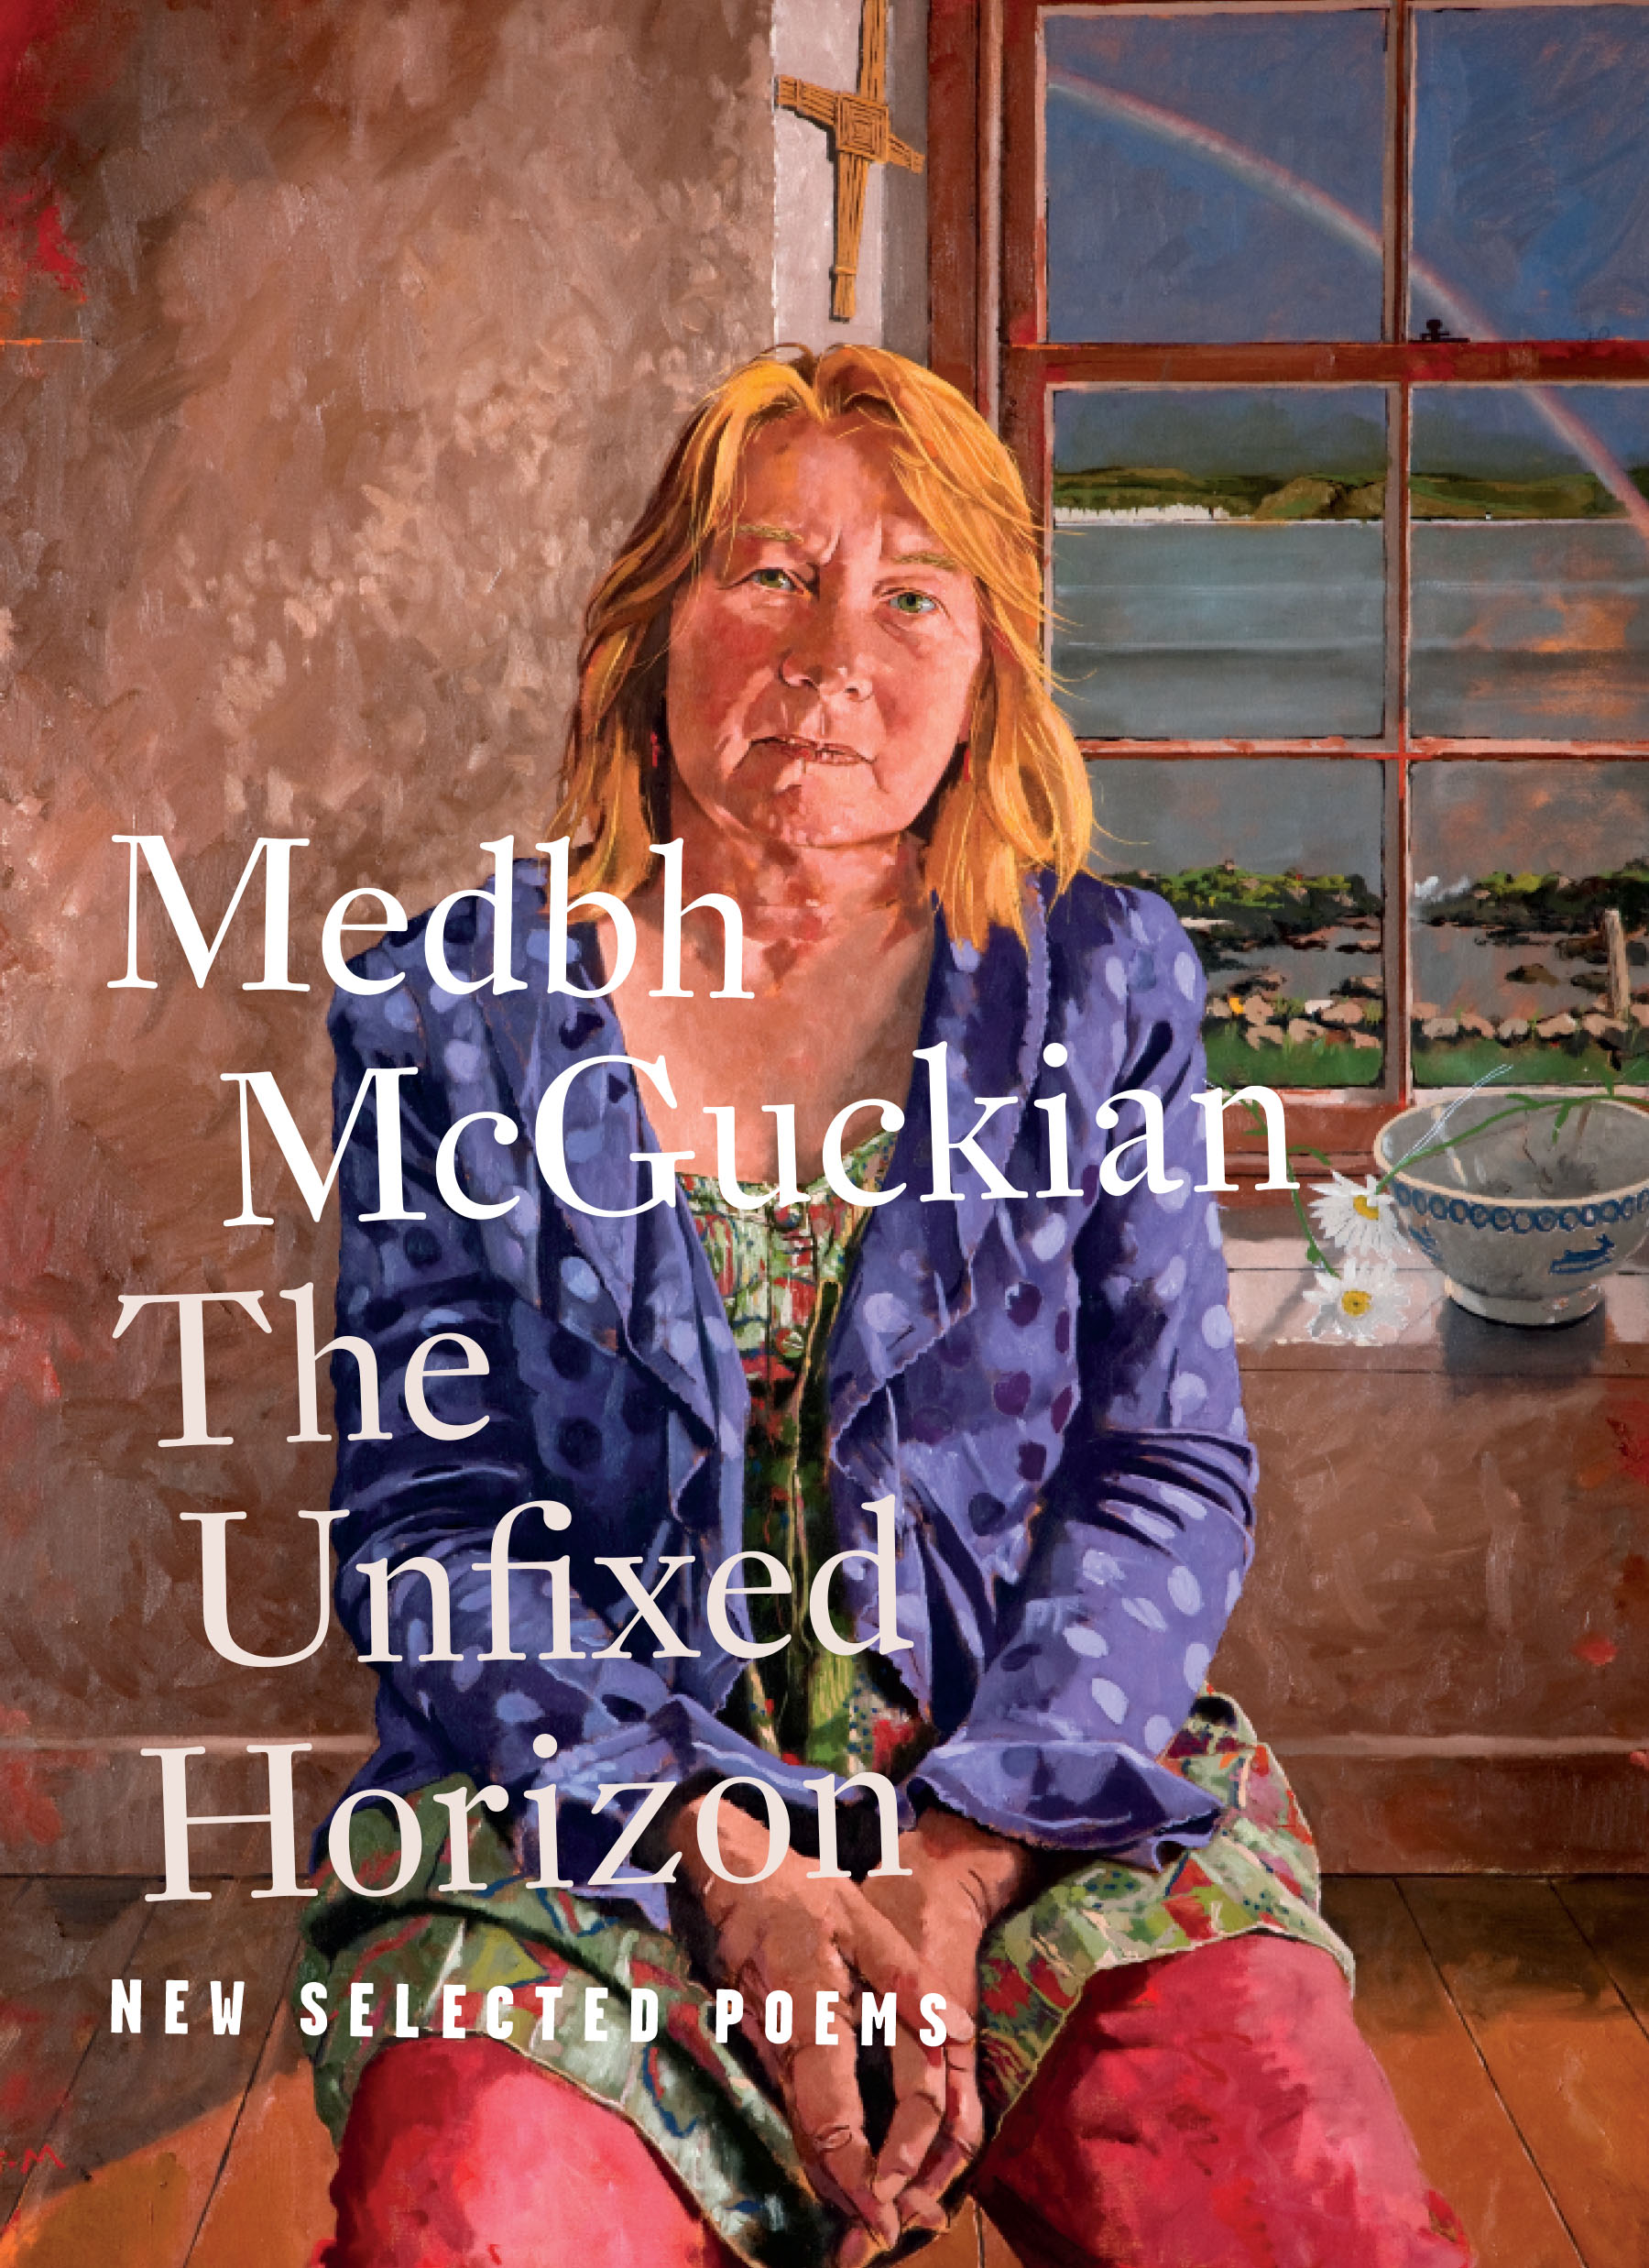 """Where language fades into cries or whispers"": An Interview with Medbh McGuckian"